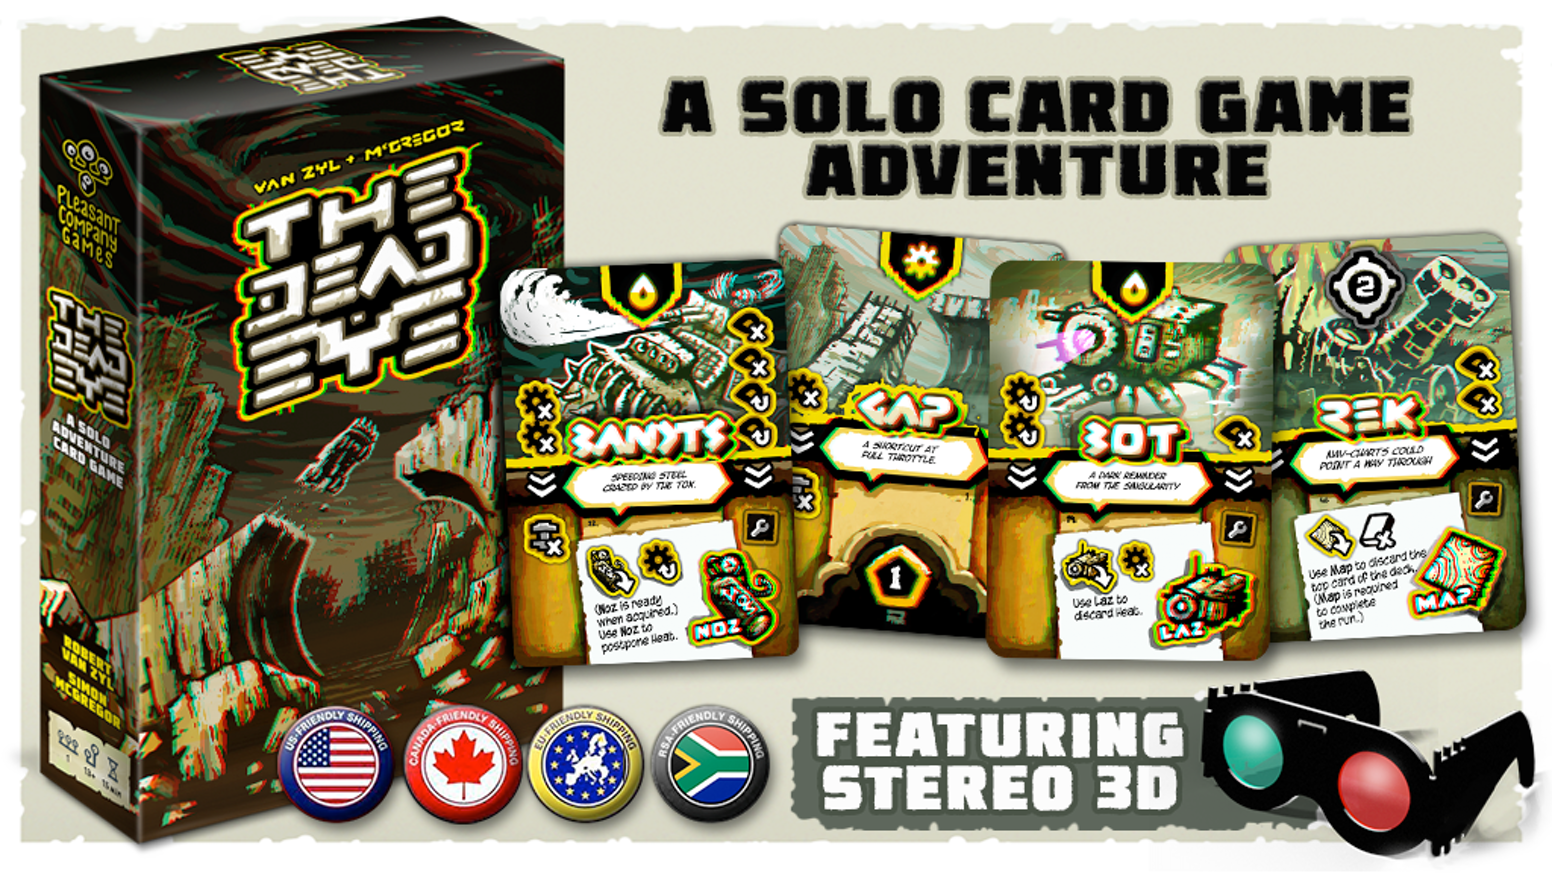 Escape a perilous planet. A solo card game adventure. Featuring stereoscopic 3D.